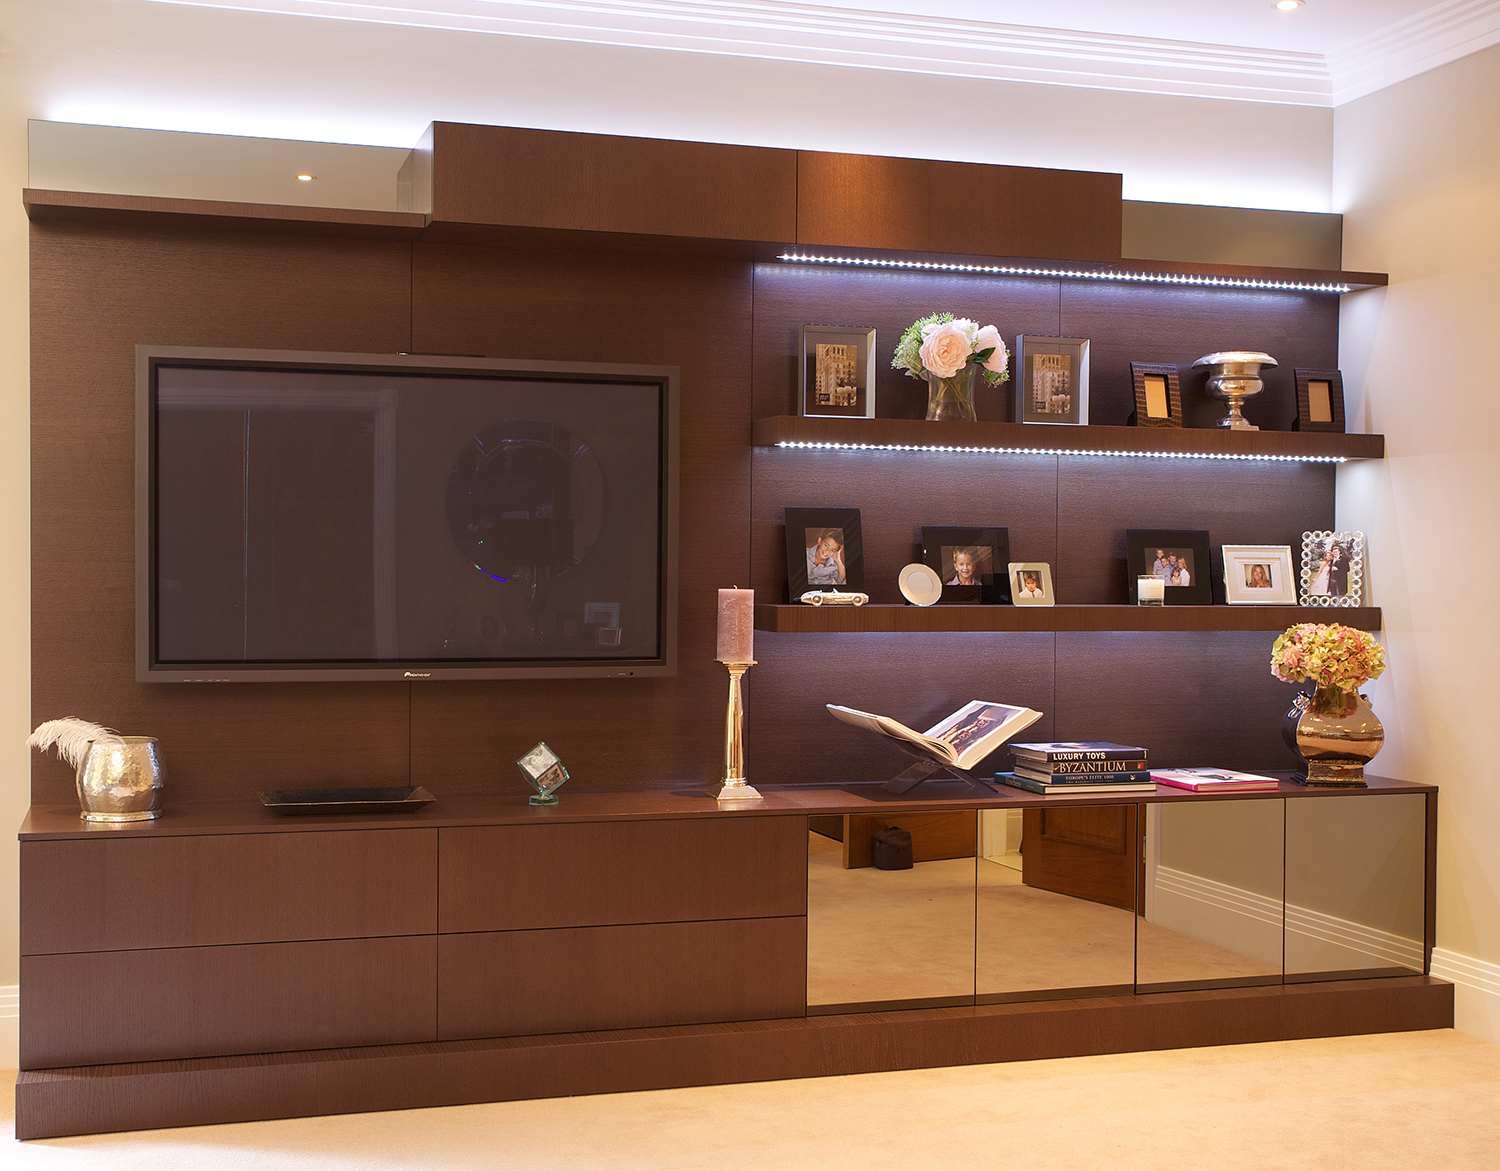 Bespoke Furniture Gallery - Bespoke Furniture Hampshire, UK